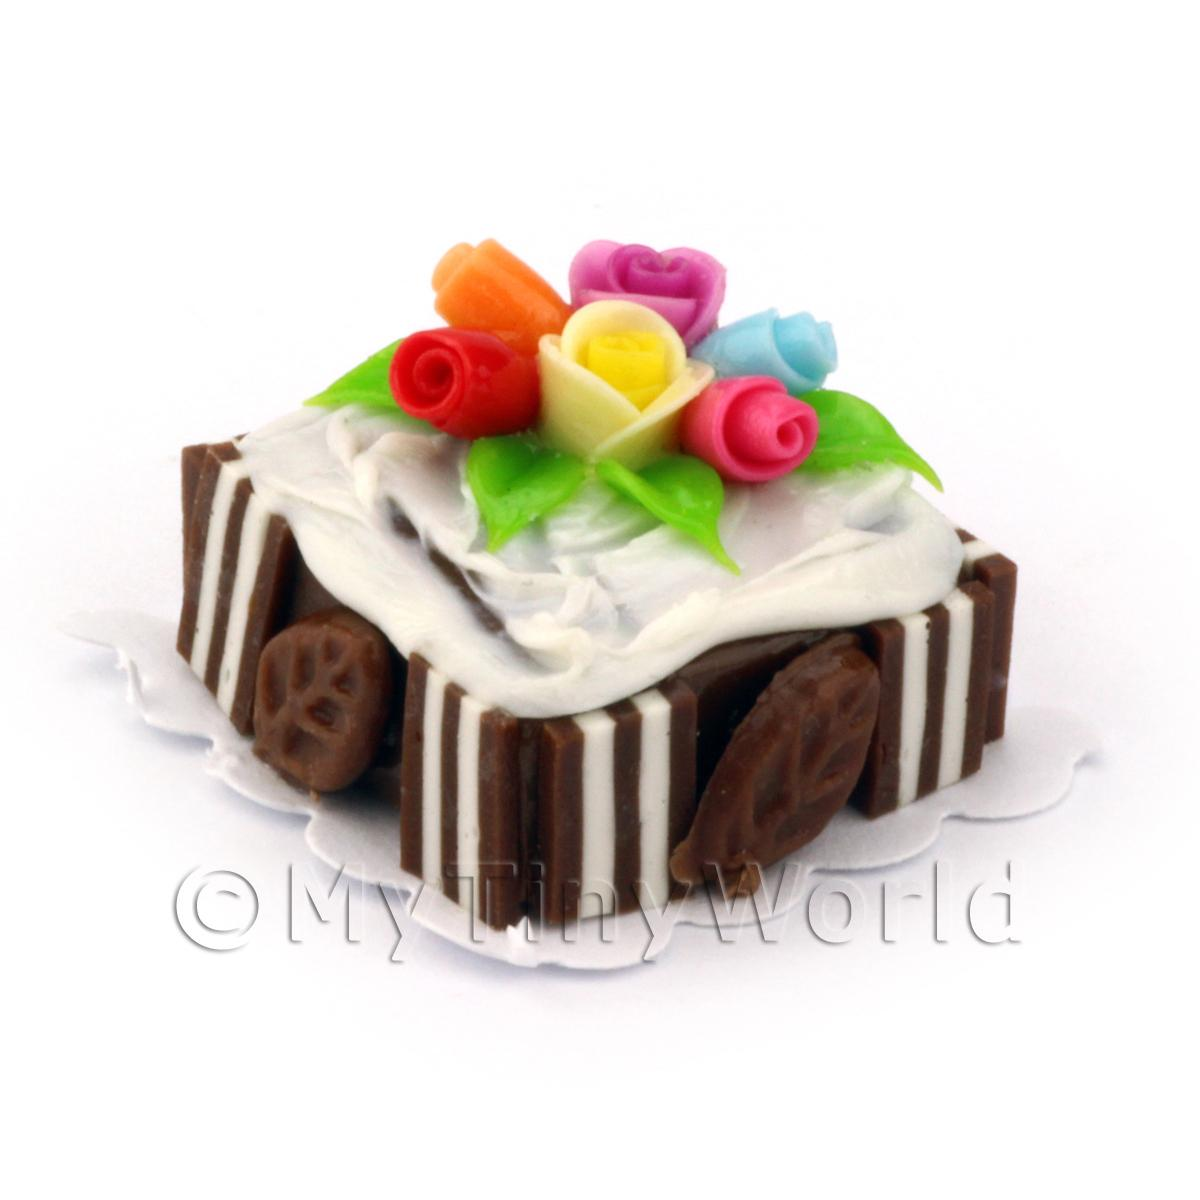 Miniature Small Square Iced Chocolate Cake With Roses